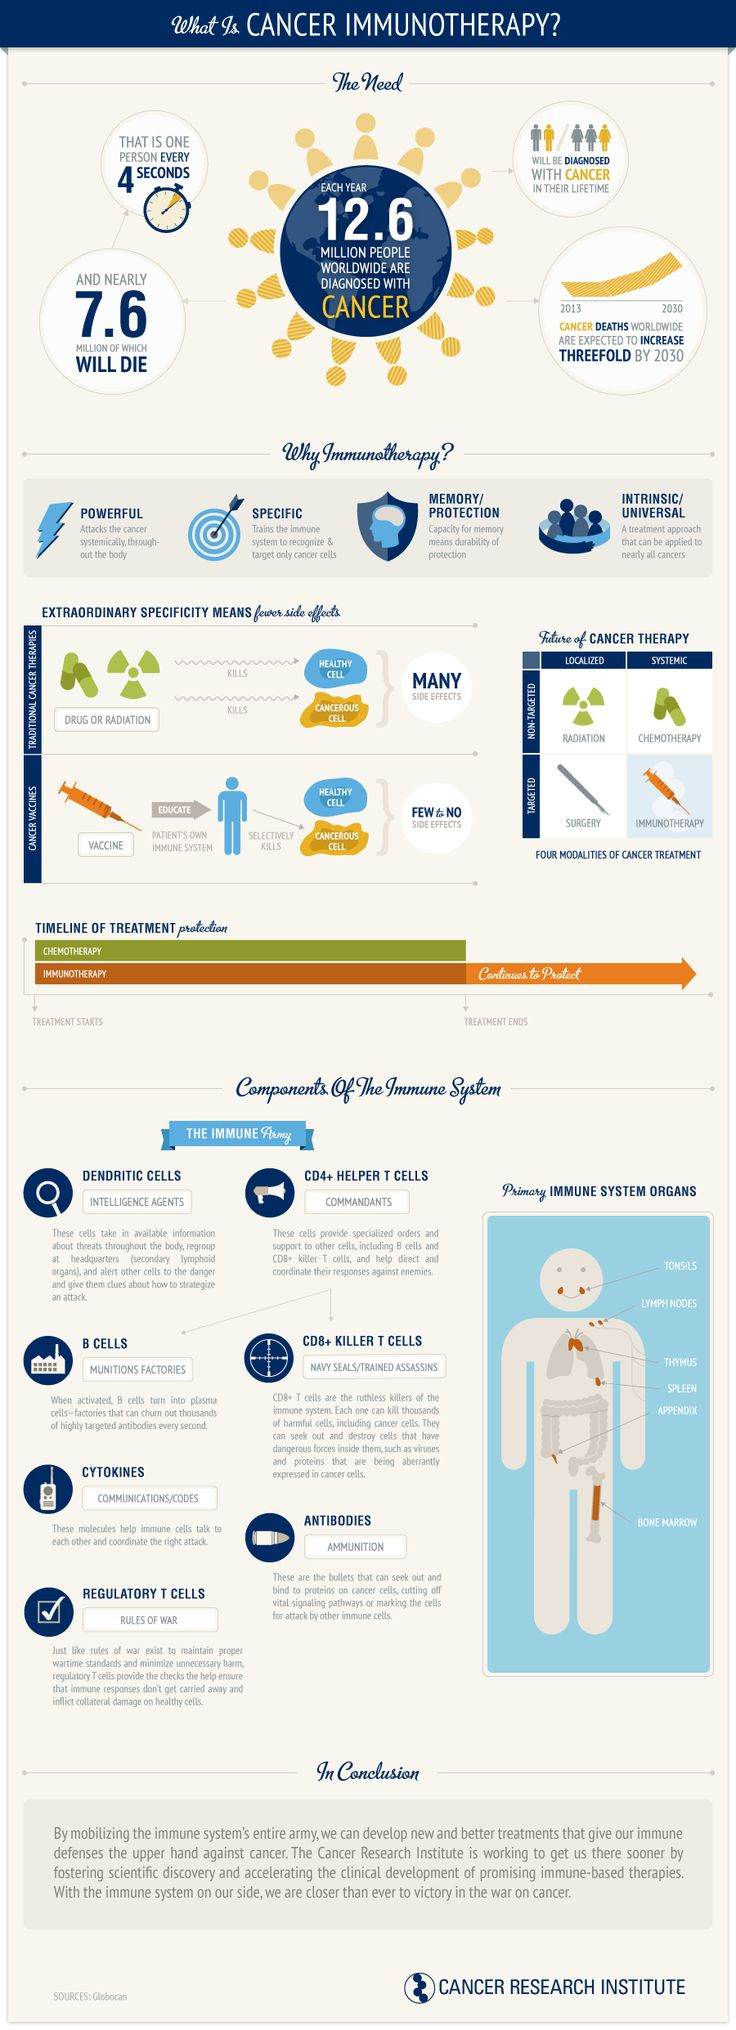 Cancer immunotherapy infographic from the Cancer Research Institute